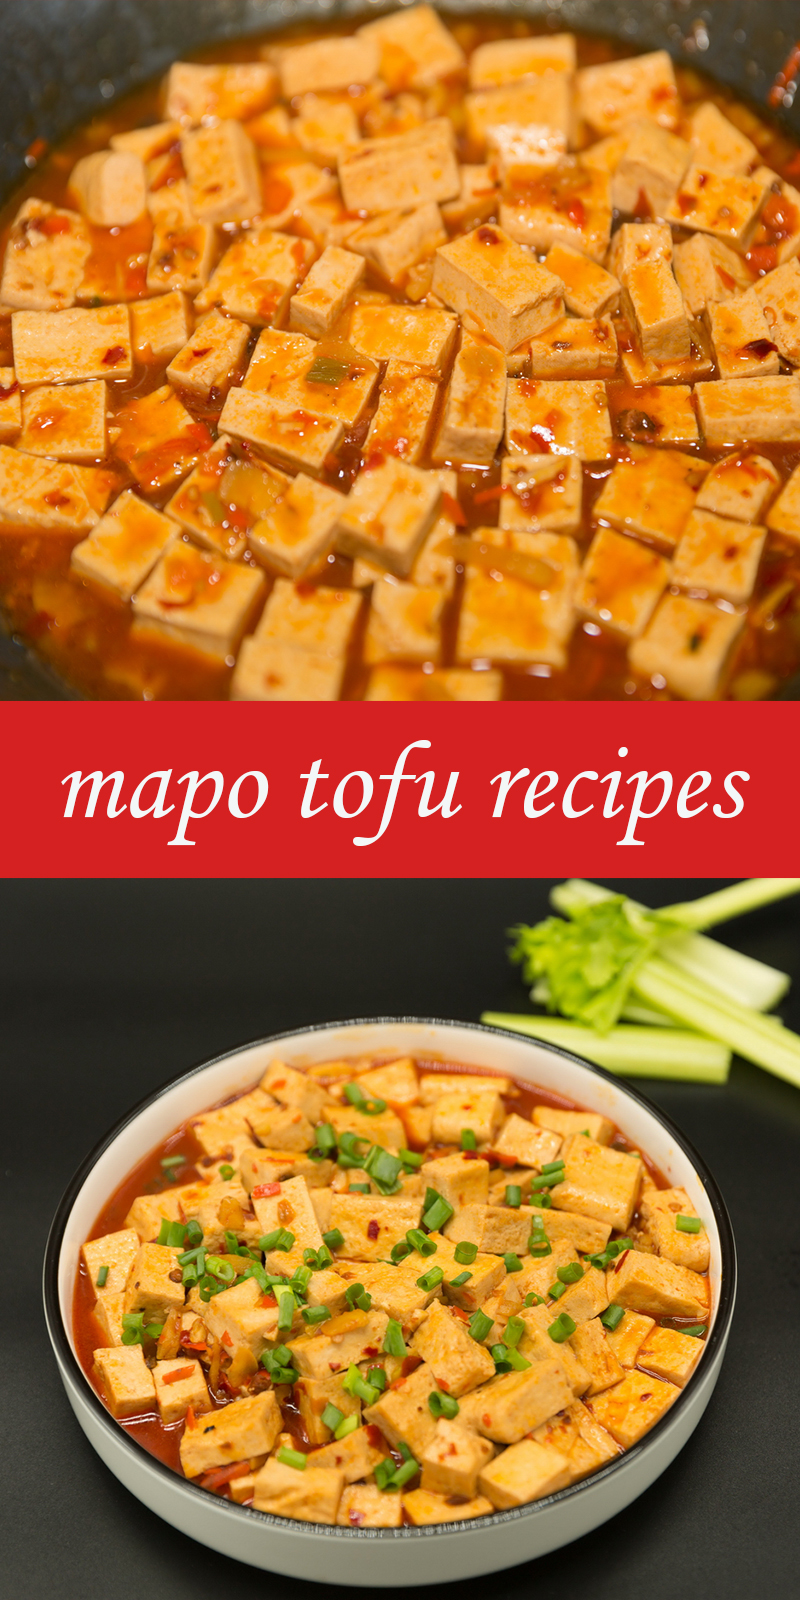 mapo tofu recipes